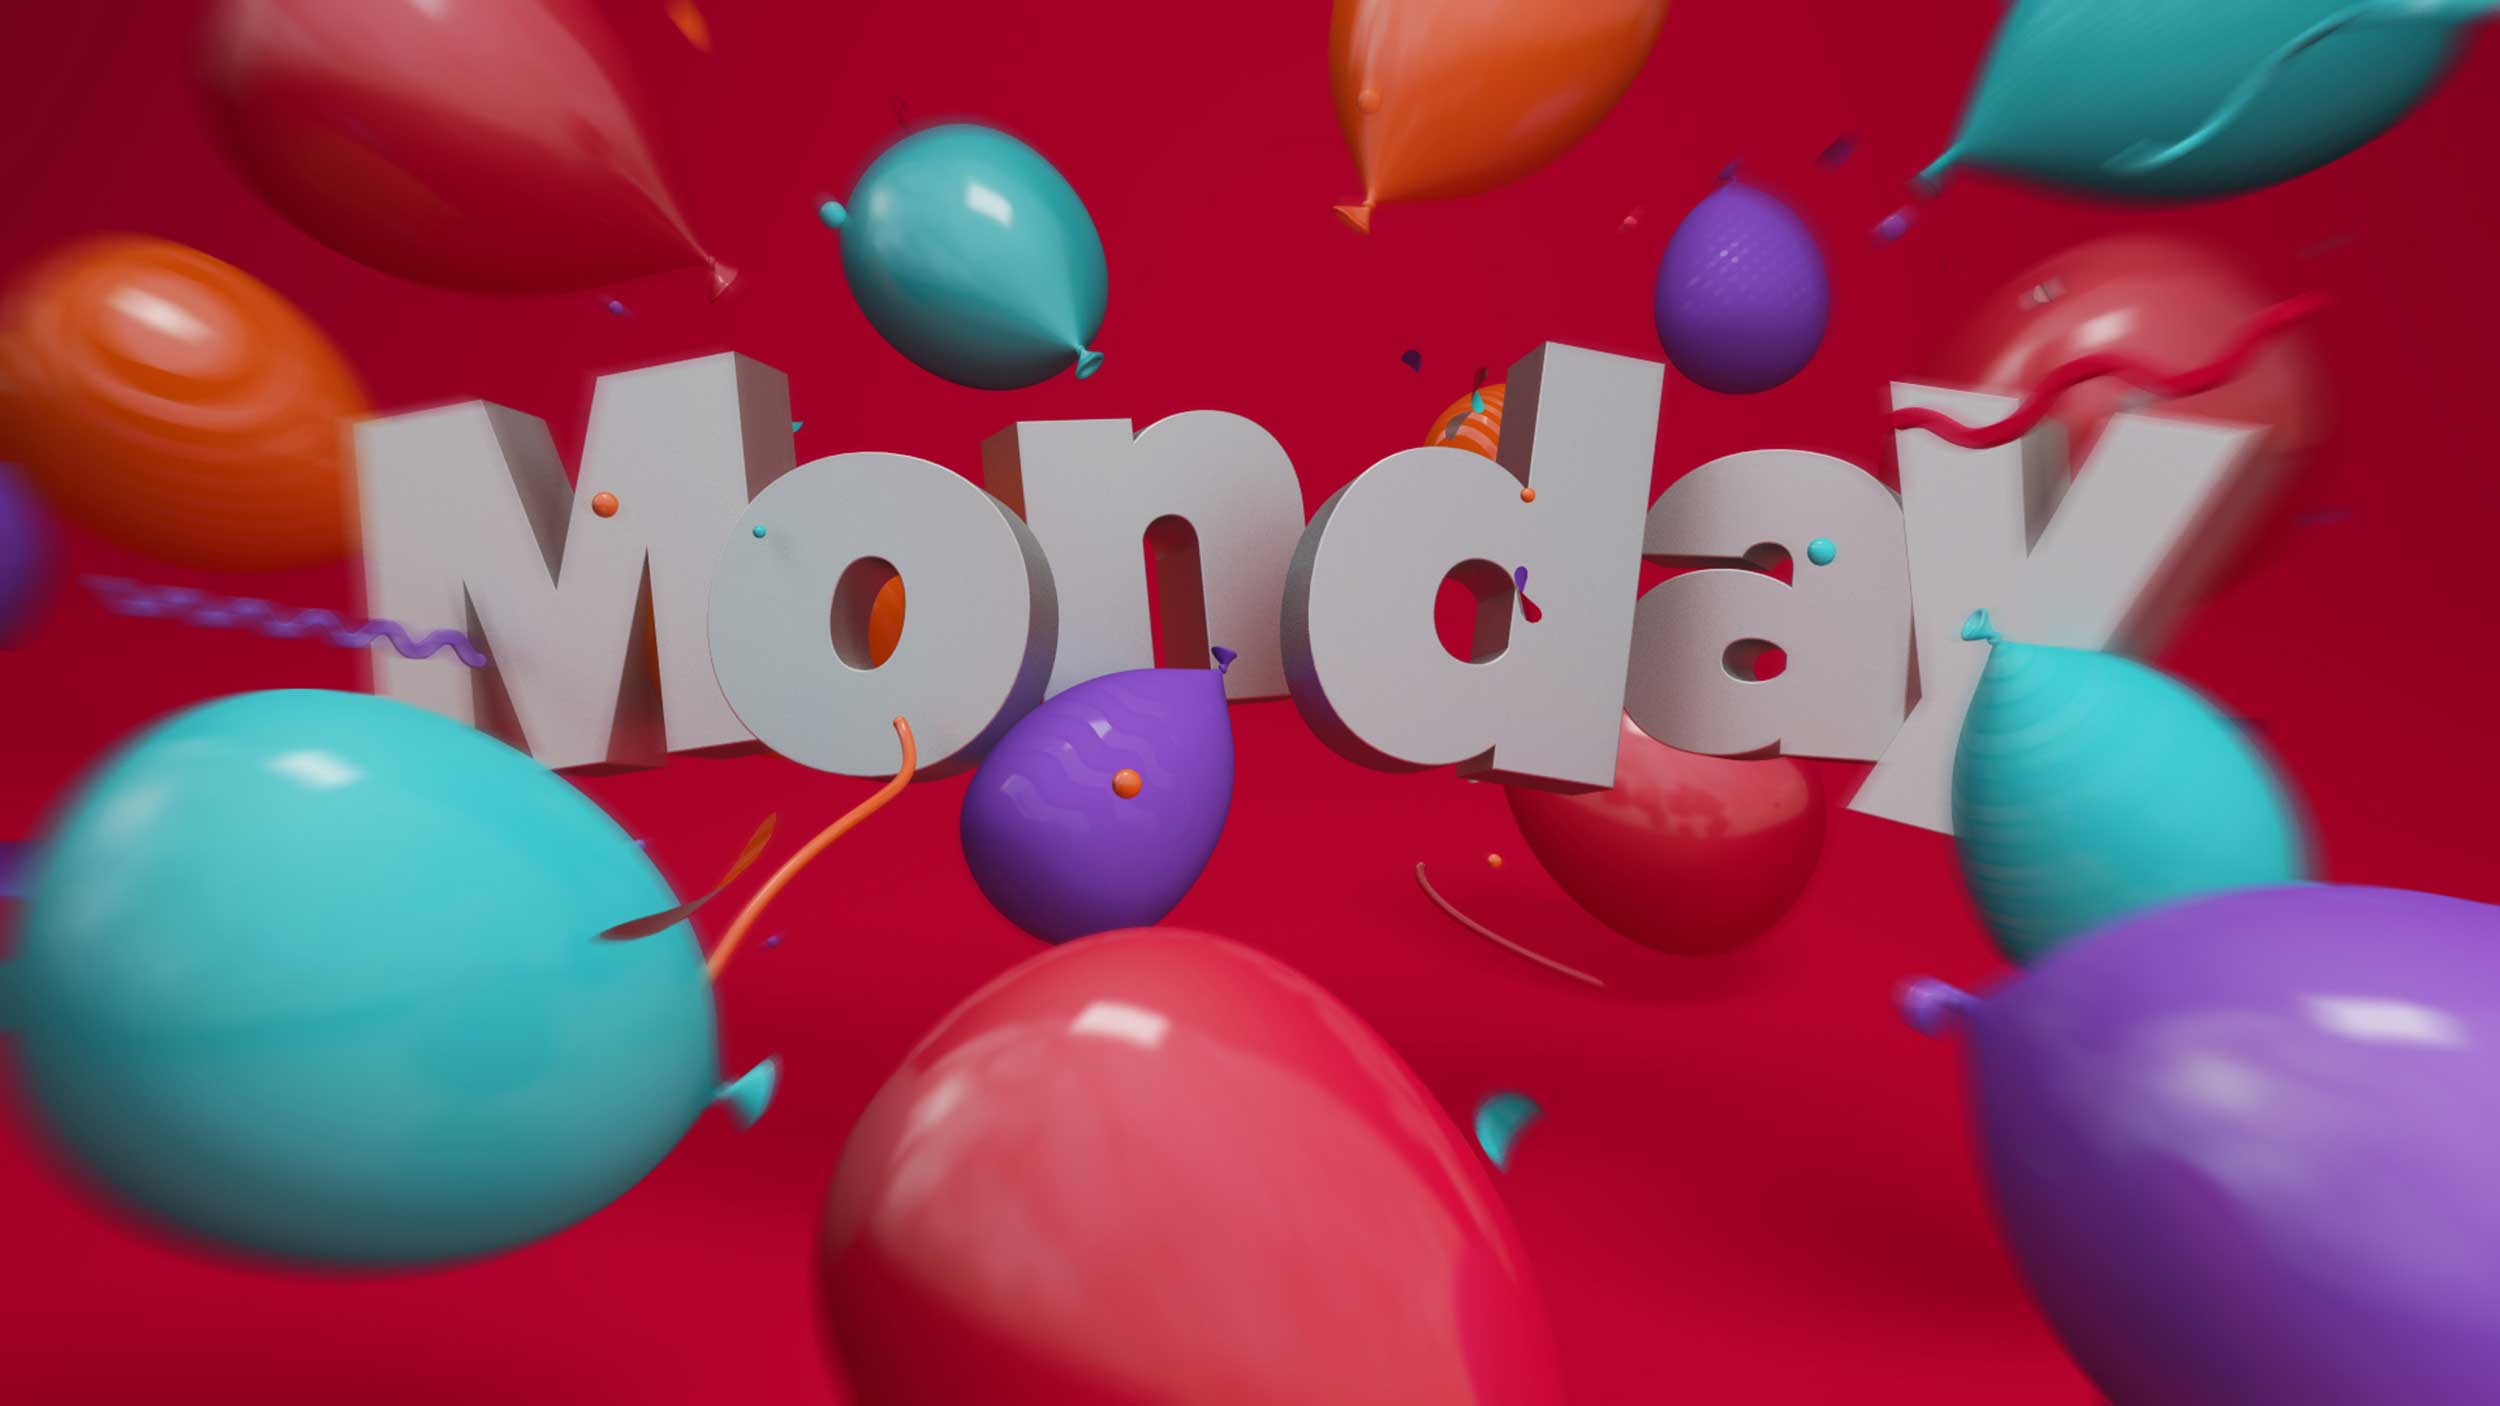 cgi-logos-type-design-Monday-TV-Ad-for-YTV-with-animated-balloons-Nico Castro